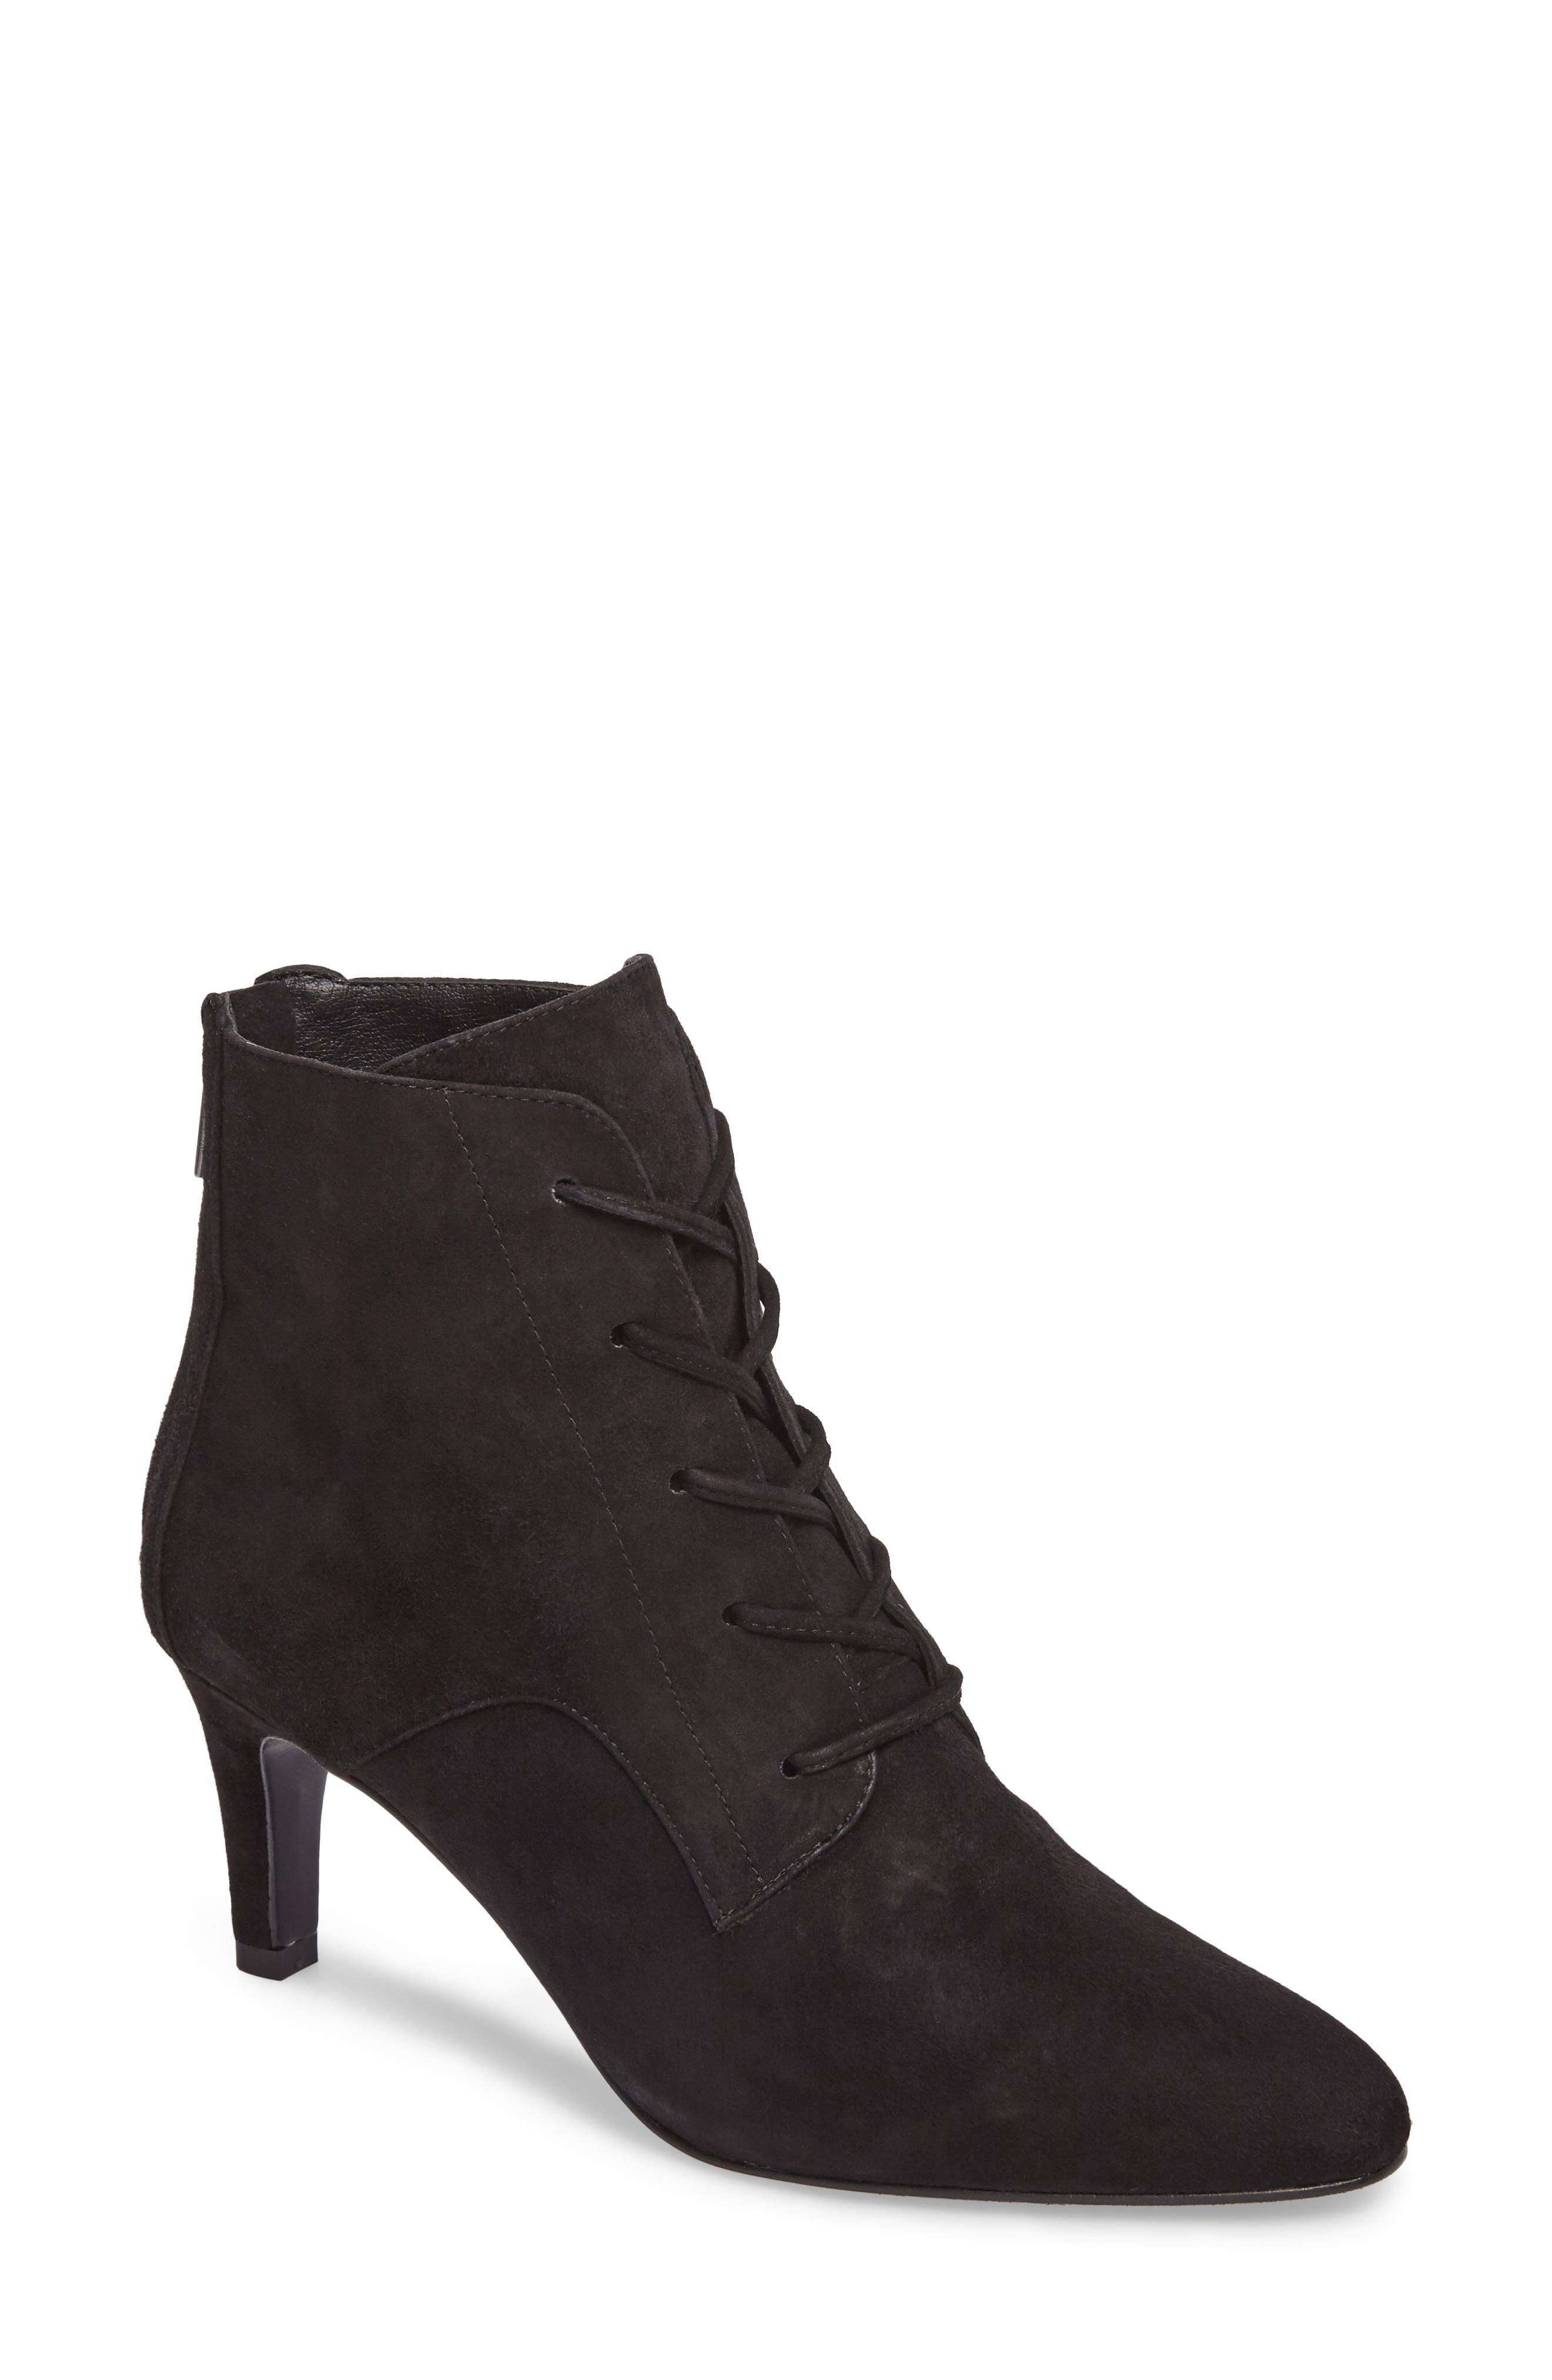 Yelen Bootie,                             Main thumbnail 1, color,                             Black Leather